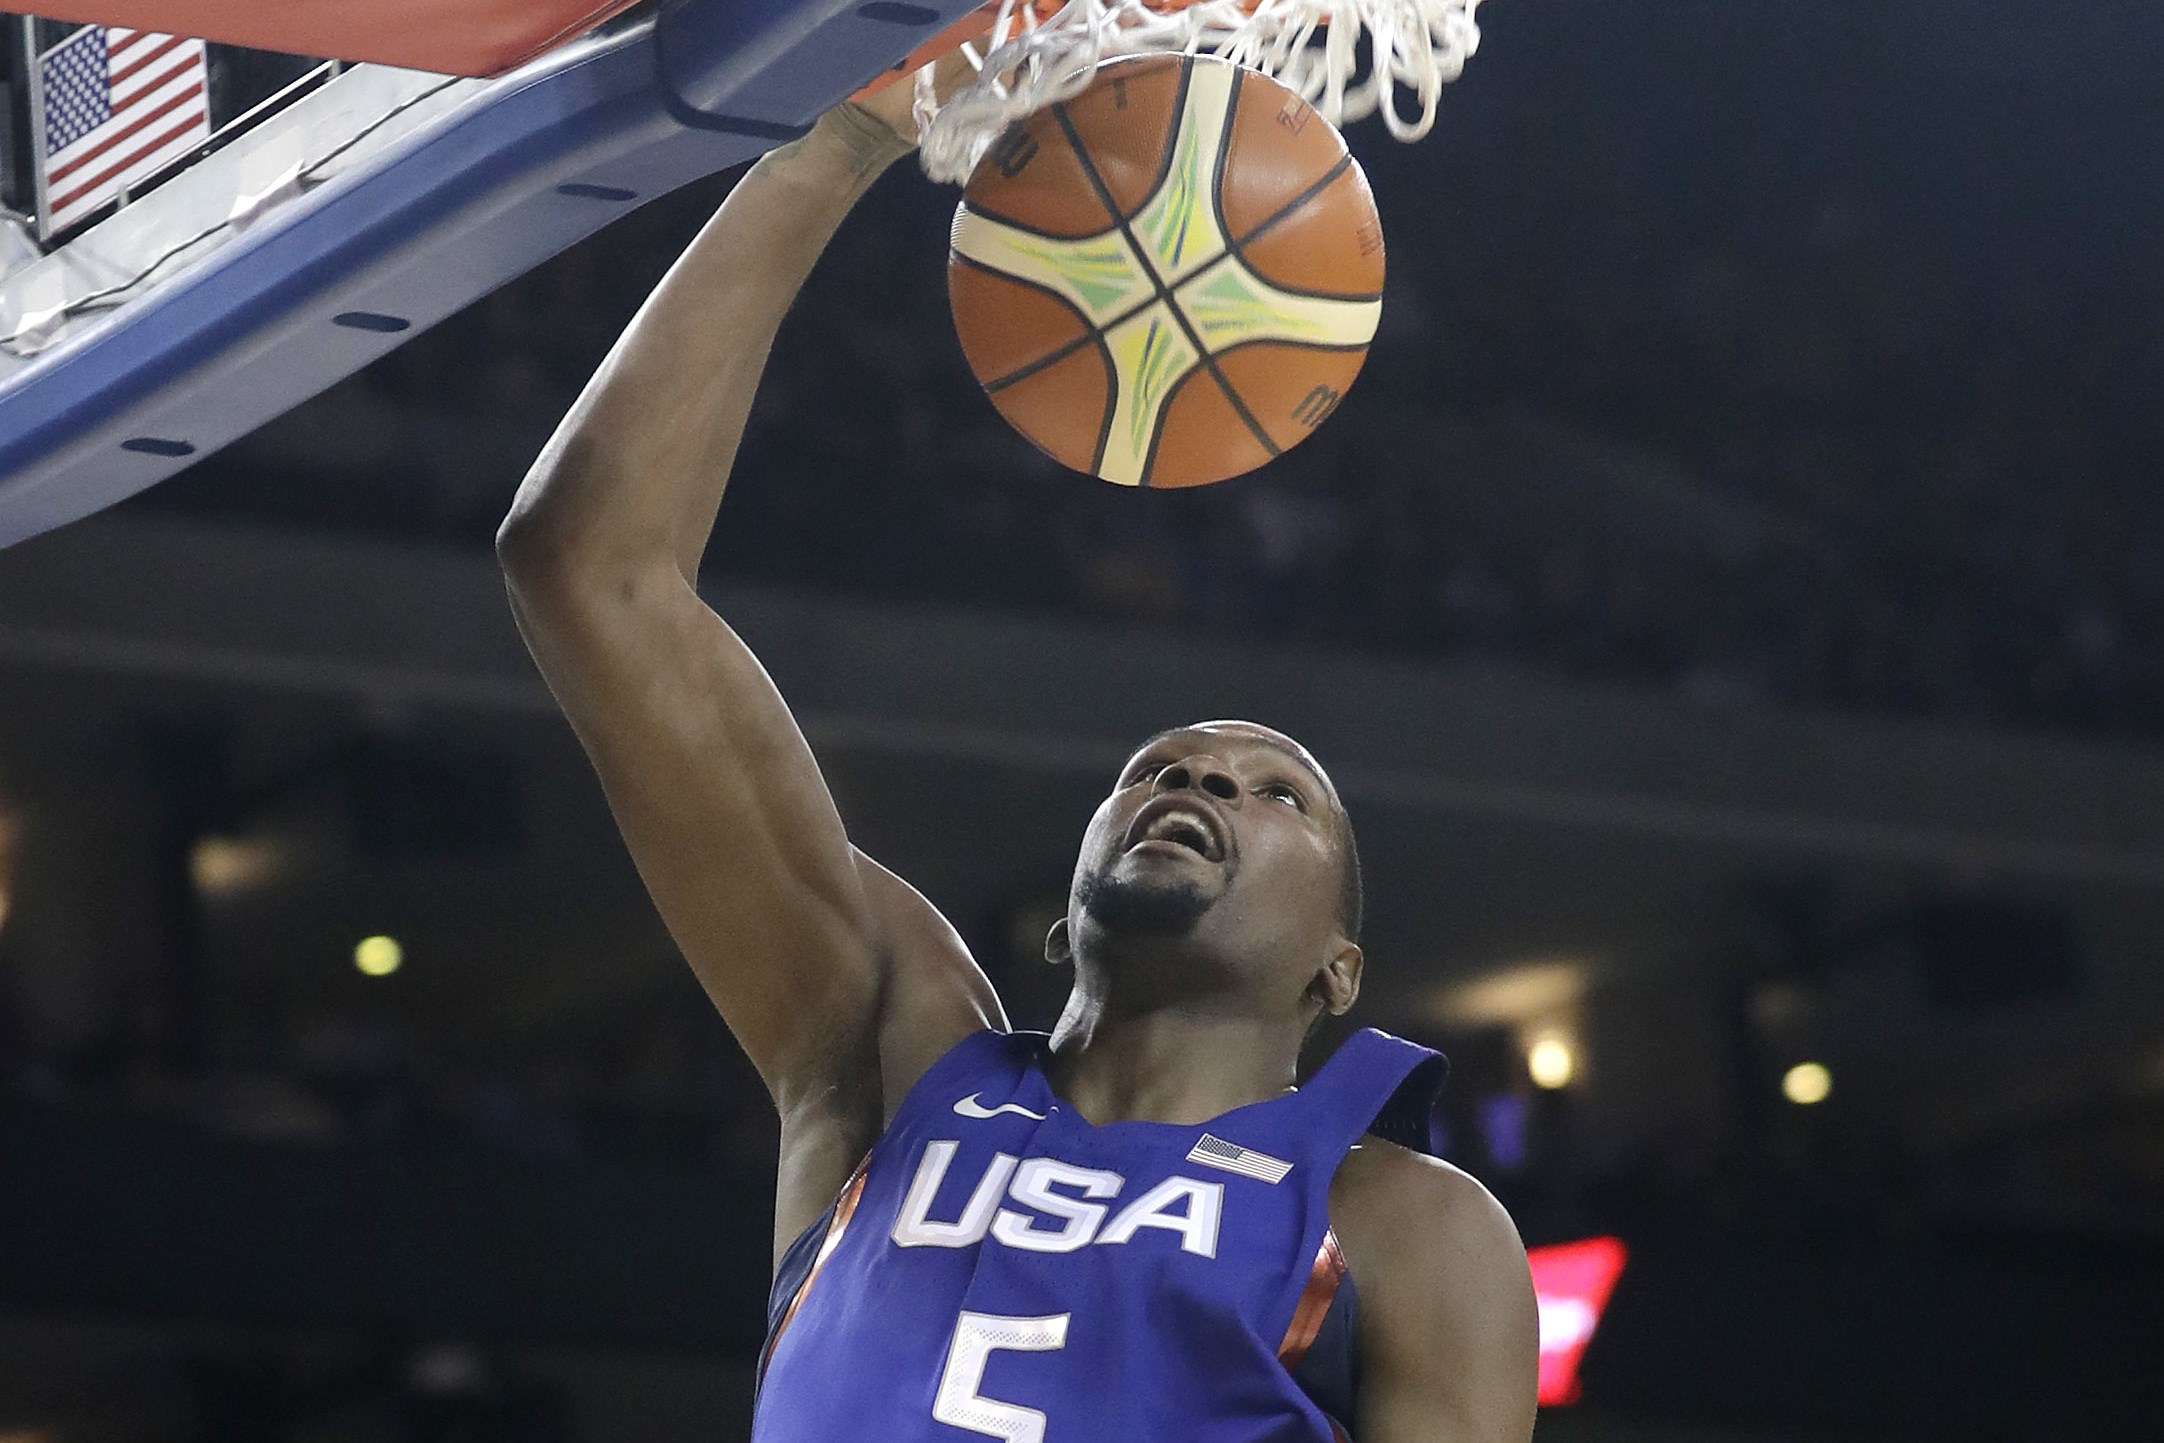 United States' Kevin Durant dunks against China during the first half of an exhibition basketball game Tuesday, July 26, 2016, in Oakland, Calif. (AP Photo/Marcio Jose Sanchez)